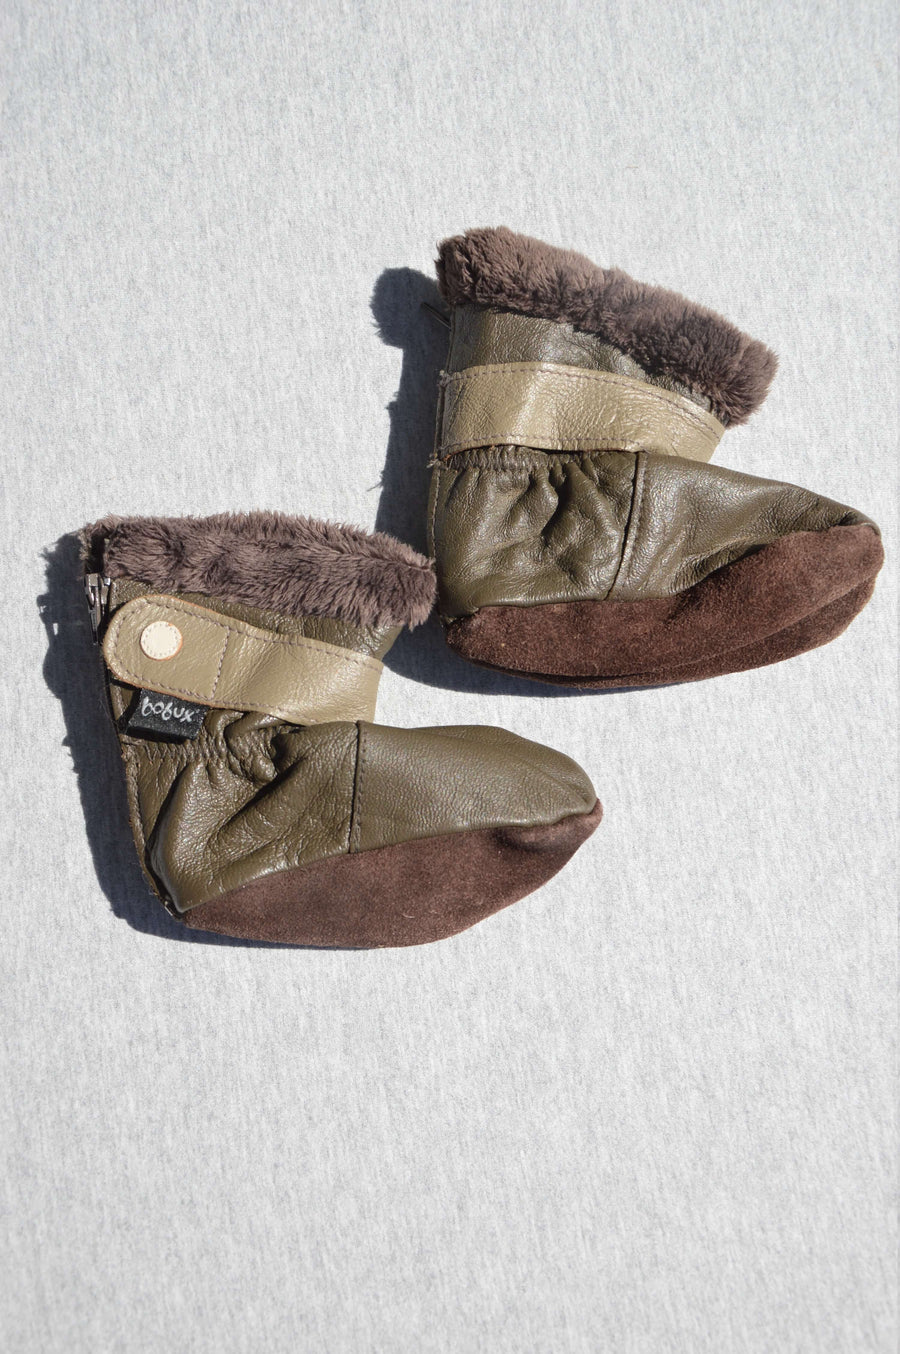 Bobux brown leather furry booties, size L